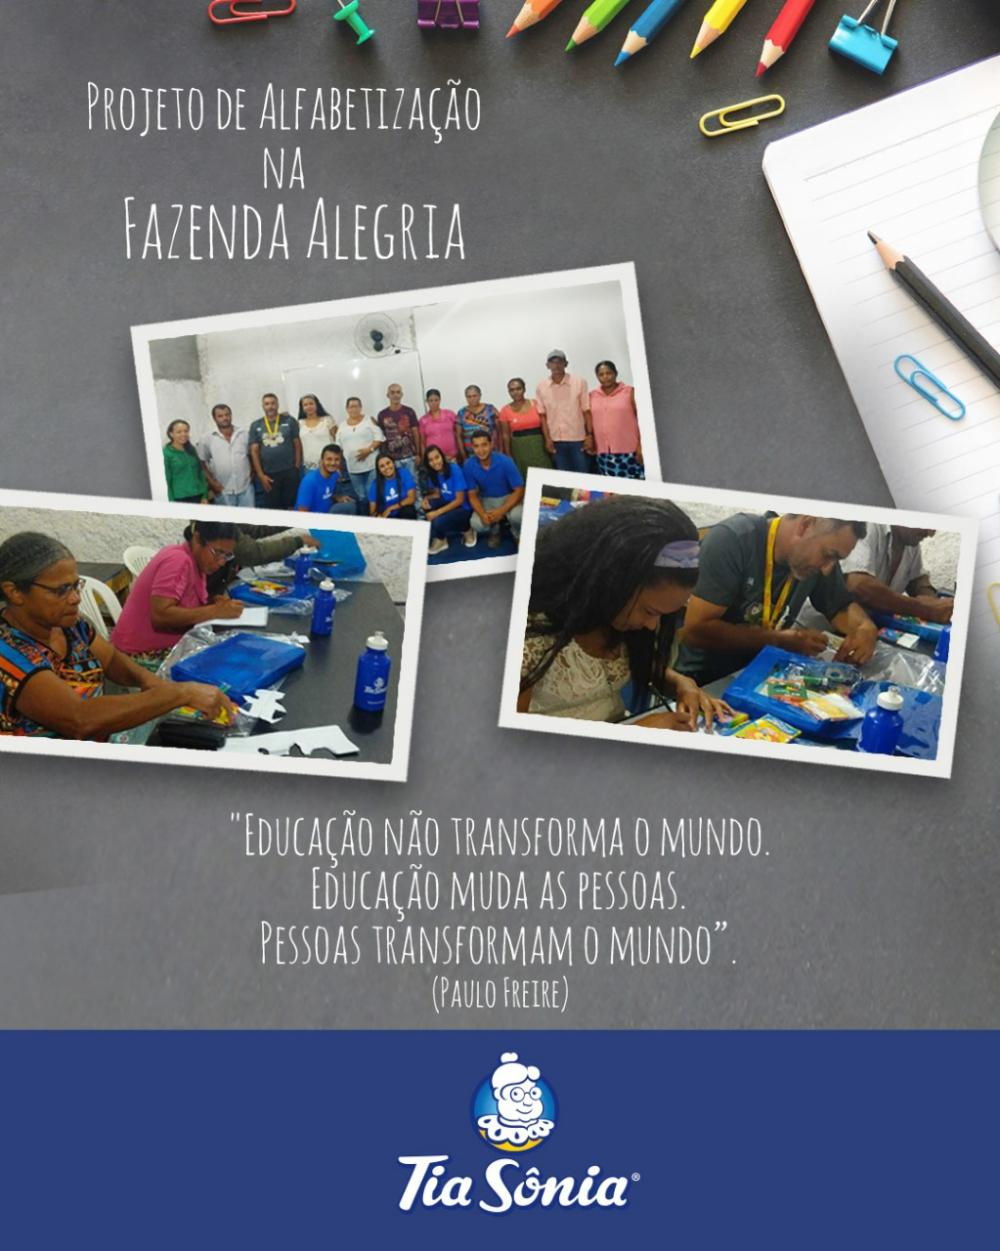 Tia Sônia's Literacy Project at Fazenda Alegria